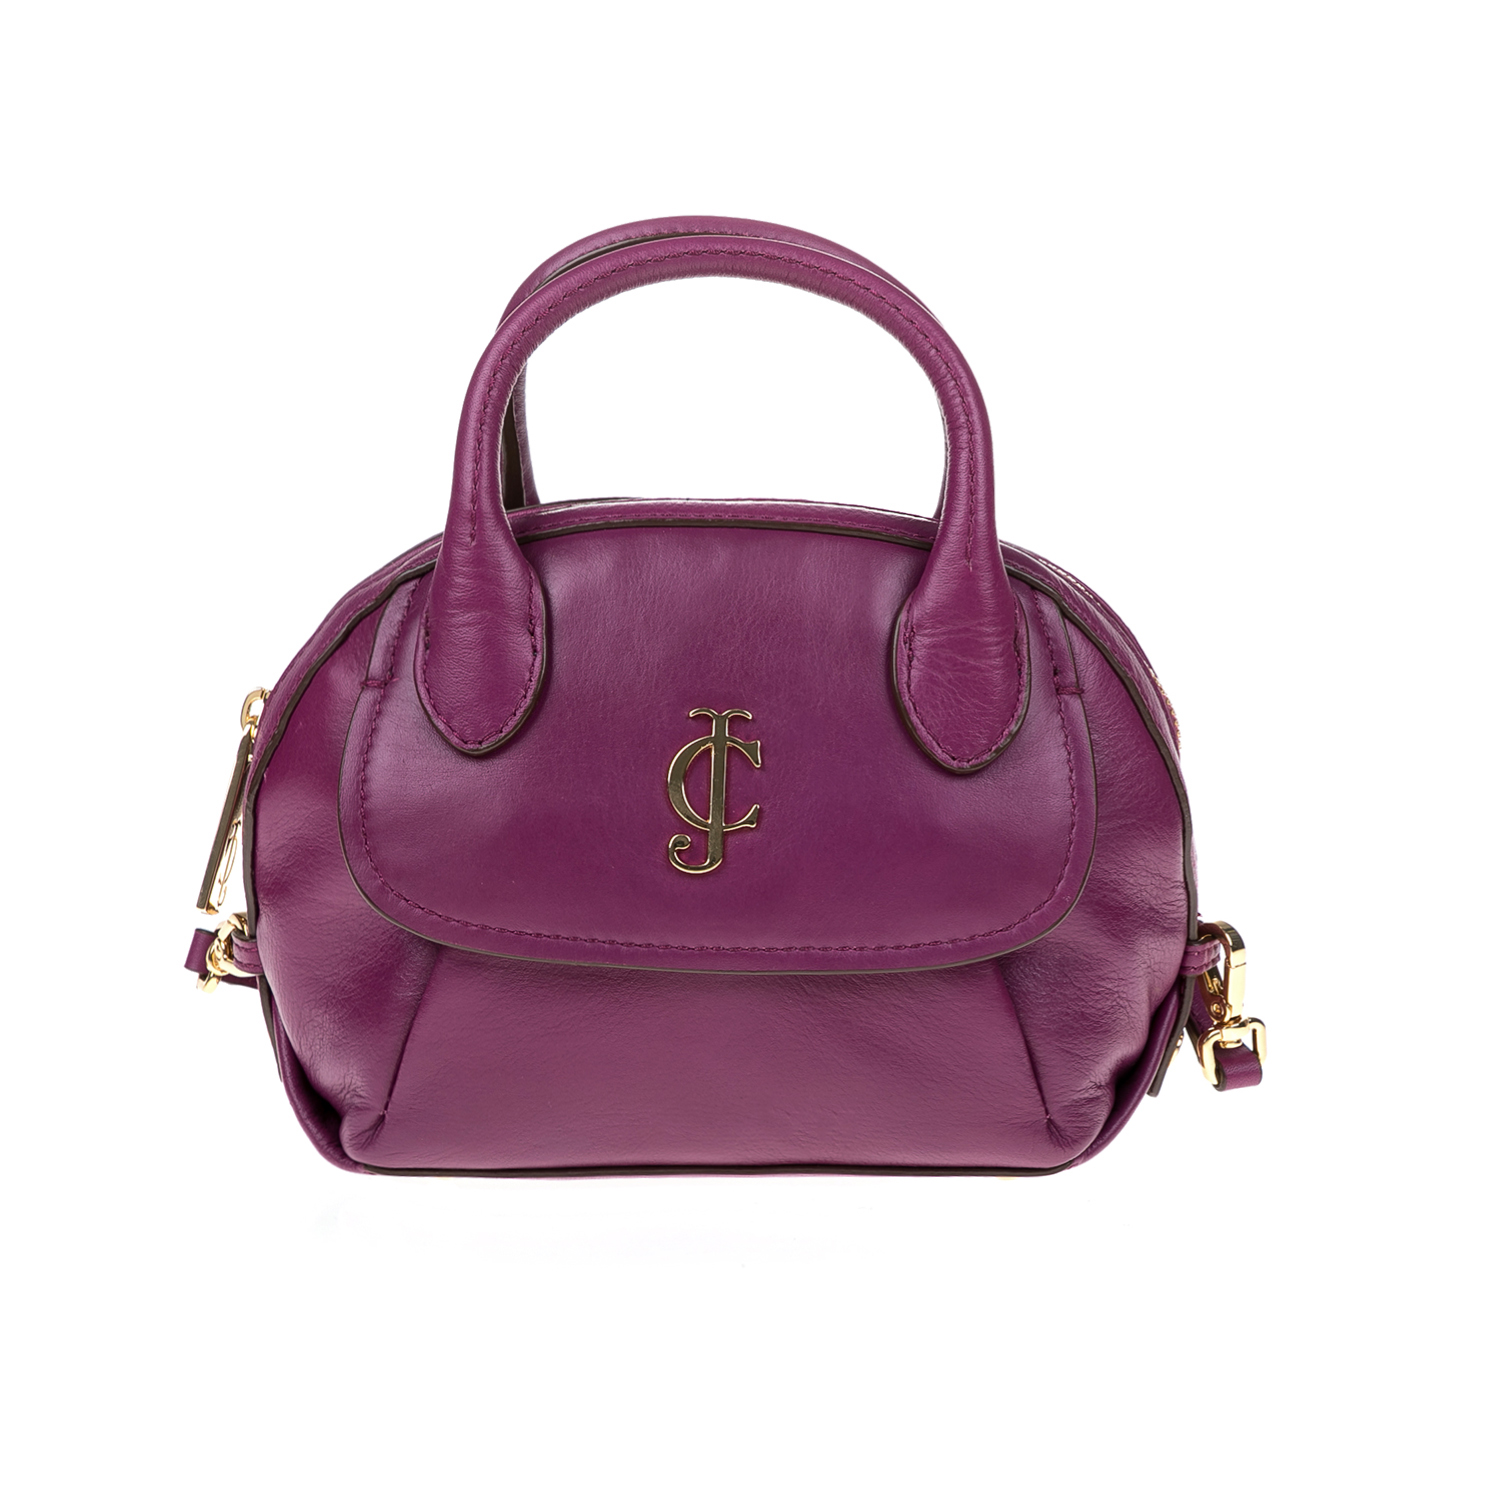 JUICY COUTURE – Γυναικεία τσάντα JUICY COUTURE μοβ 1601383.0-00D1